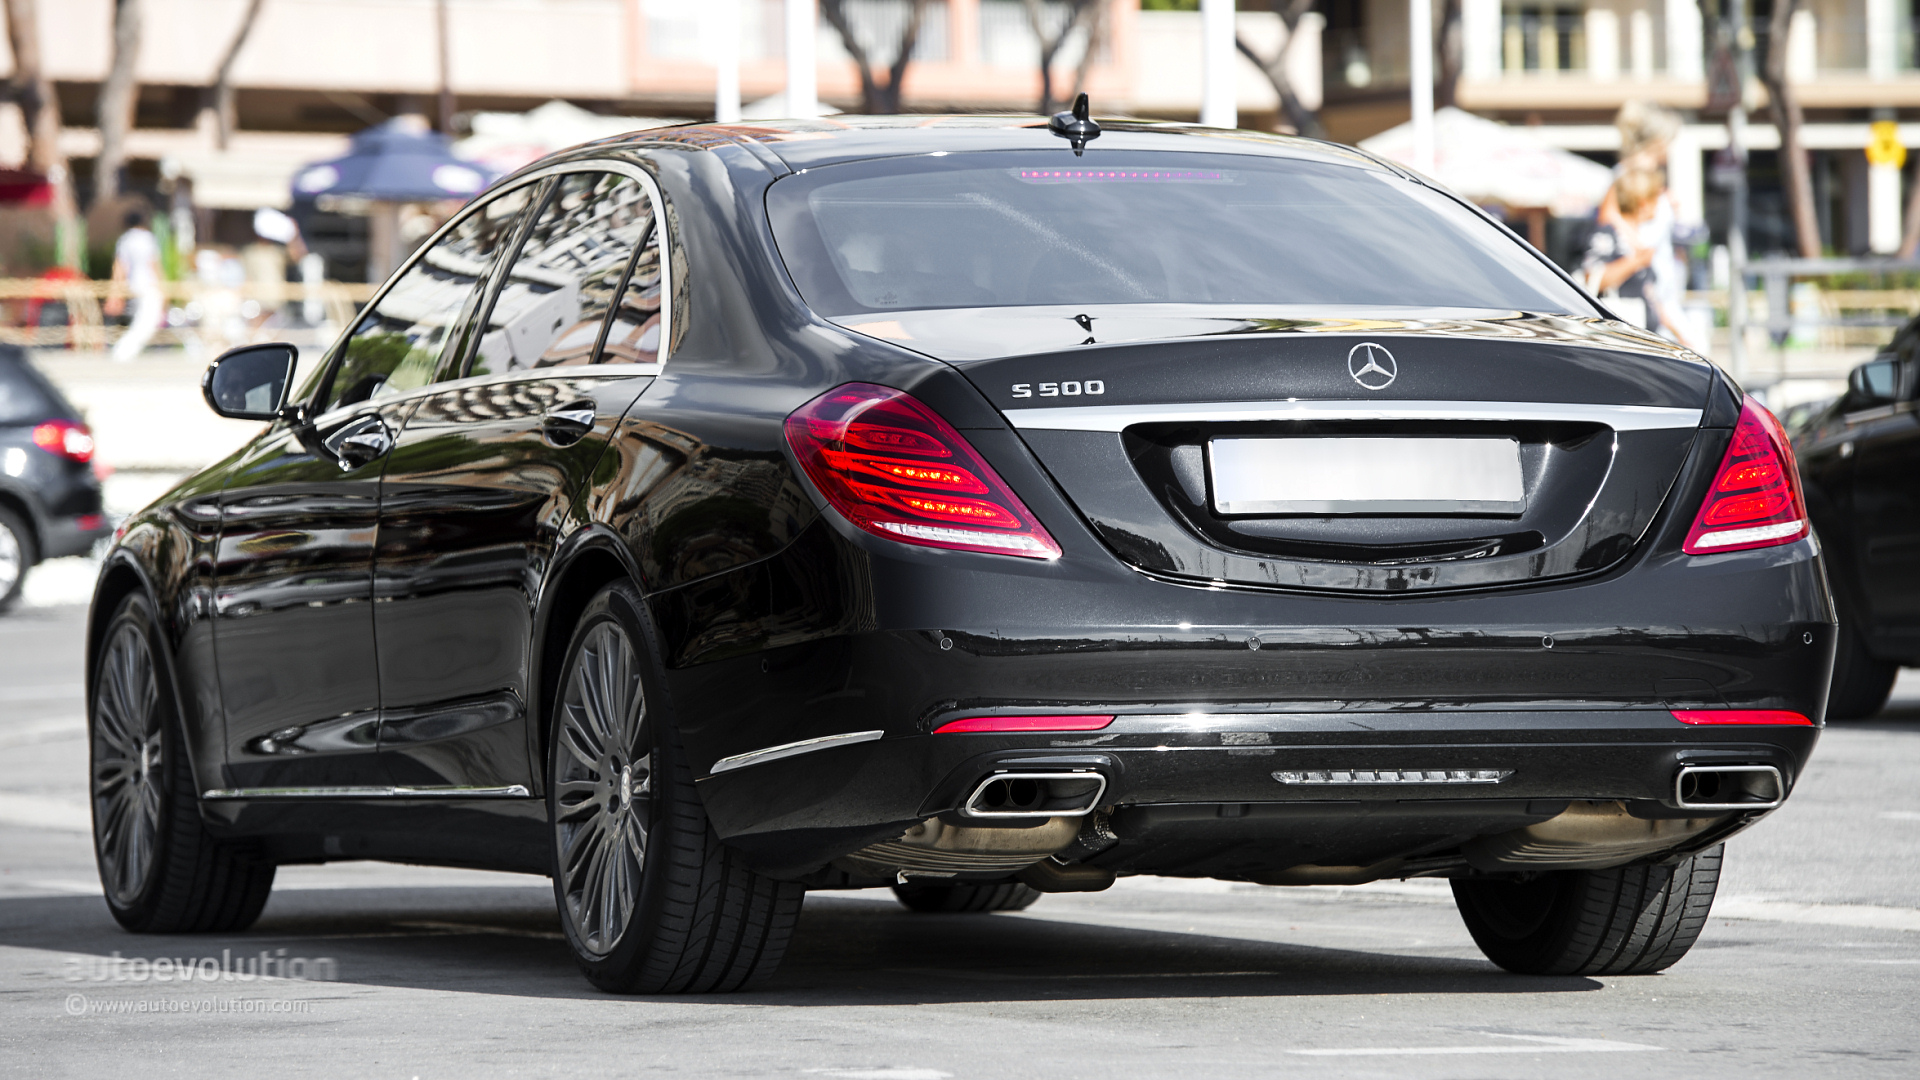 2014 mercedes benz s500 long review autoevolution for Mercedes benz 2014